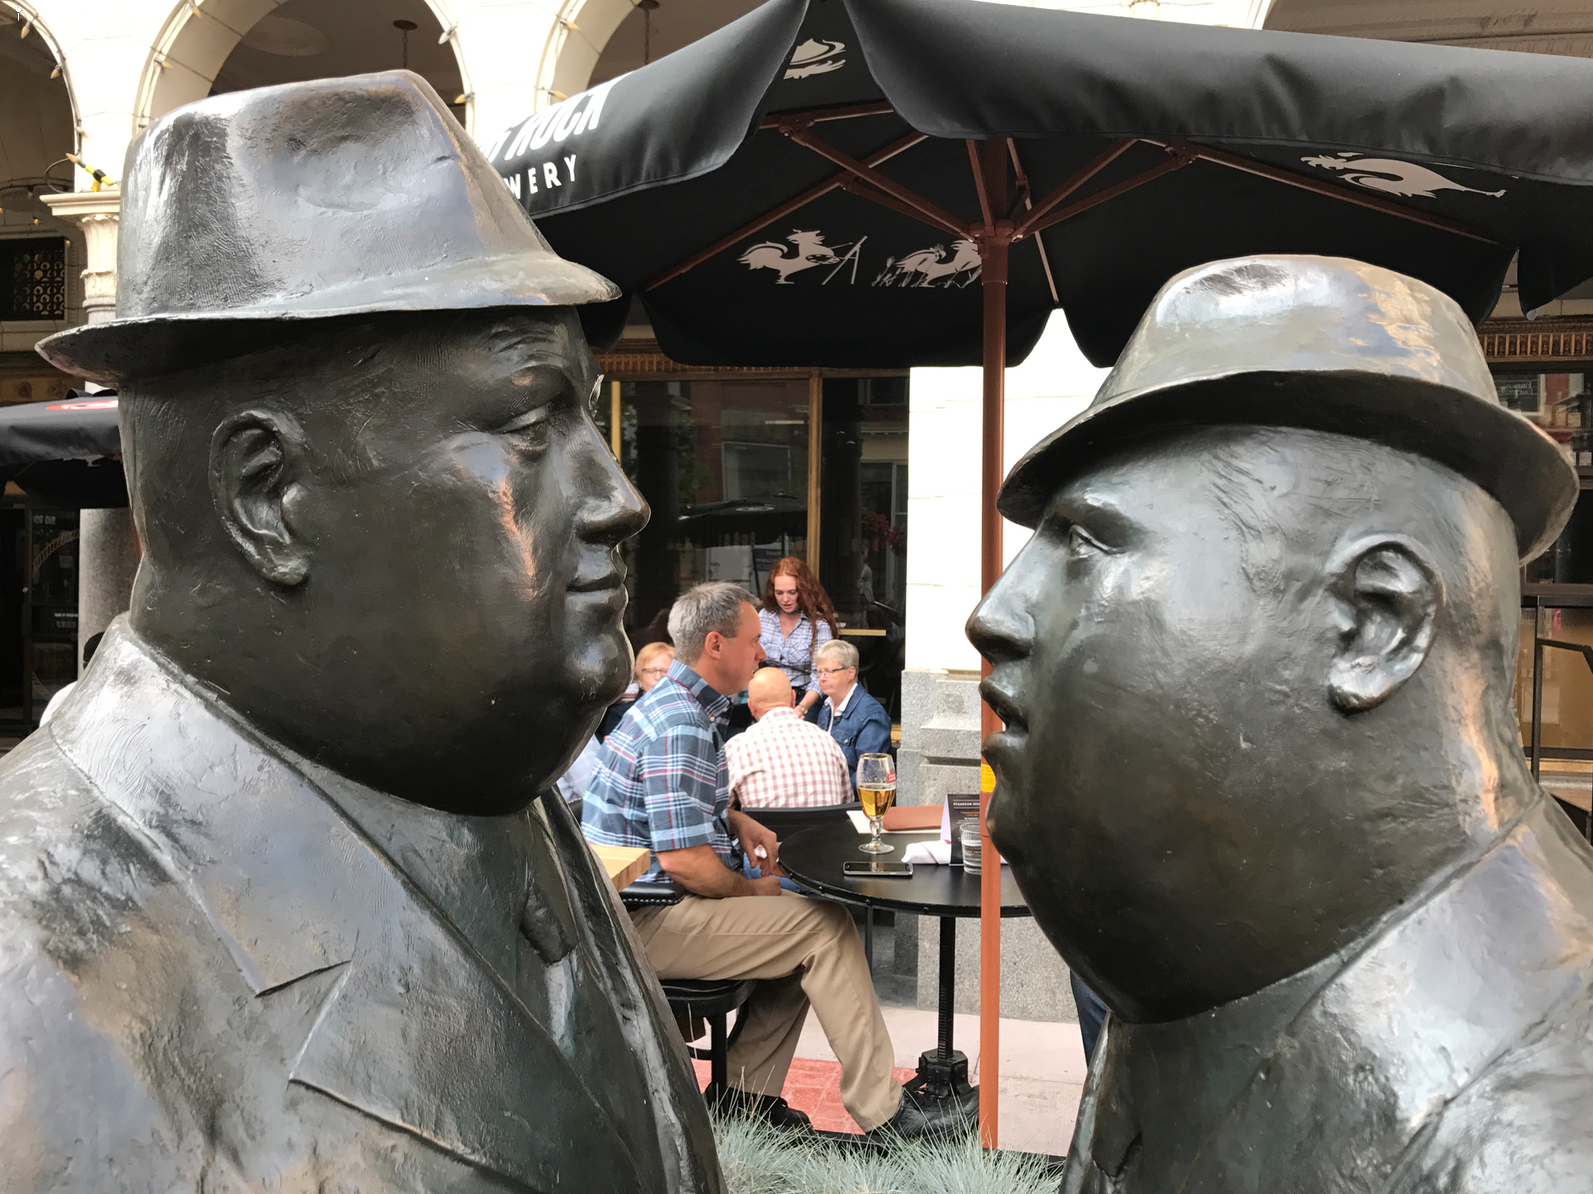 The Conversation by William McElcheran, on Stephen Avenue Walk in downtown Calgary is Calgary's signature piece of public art. It epitomizes the importance of Calgary's downtown as one of North America's leading corporate headquarter centers.